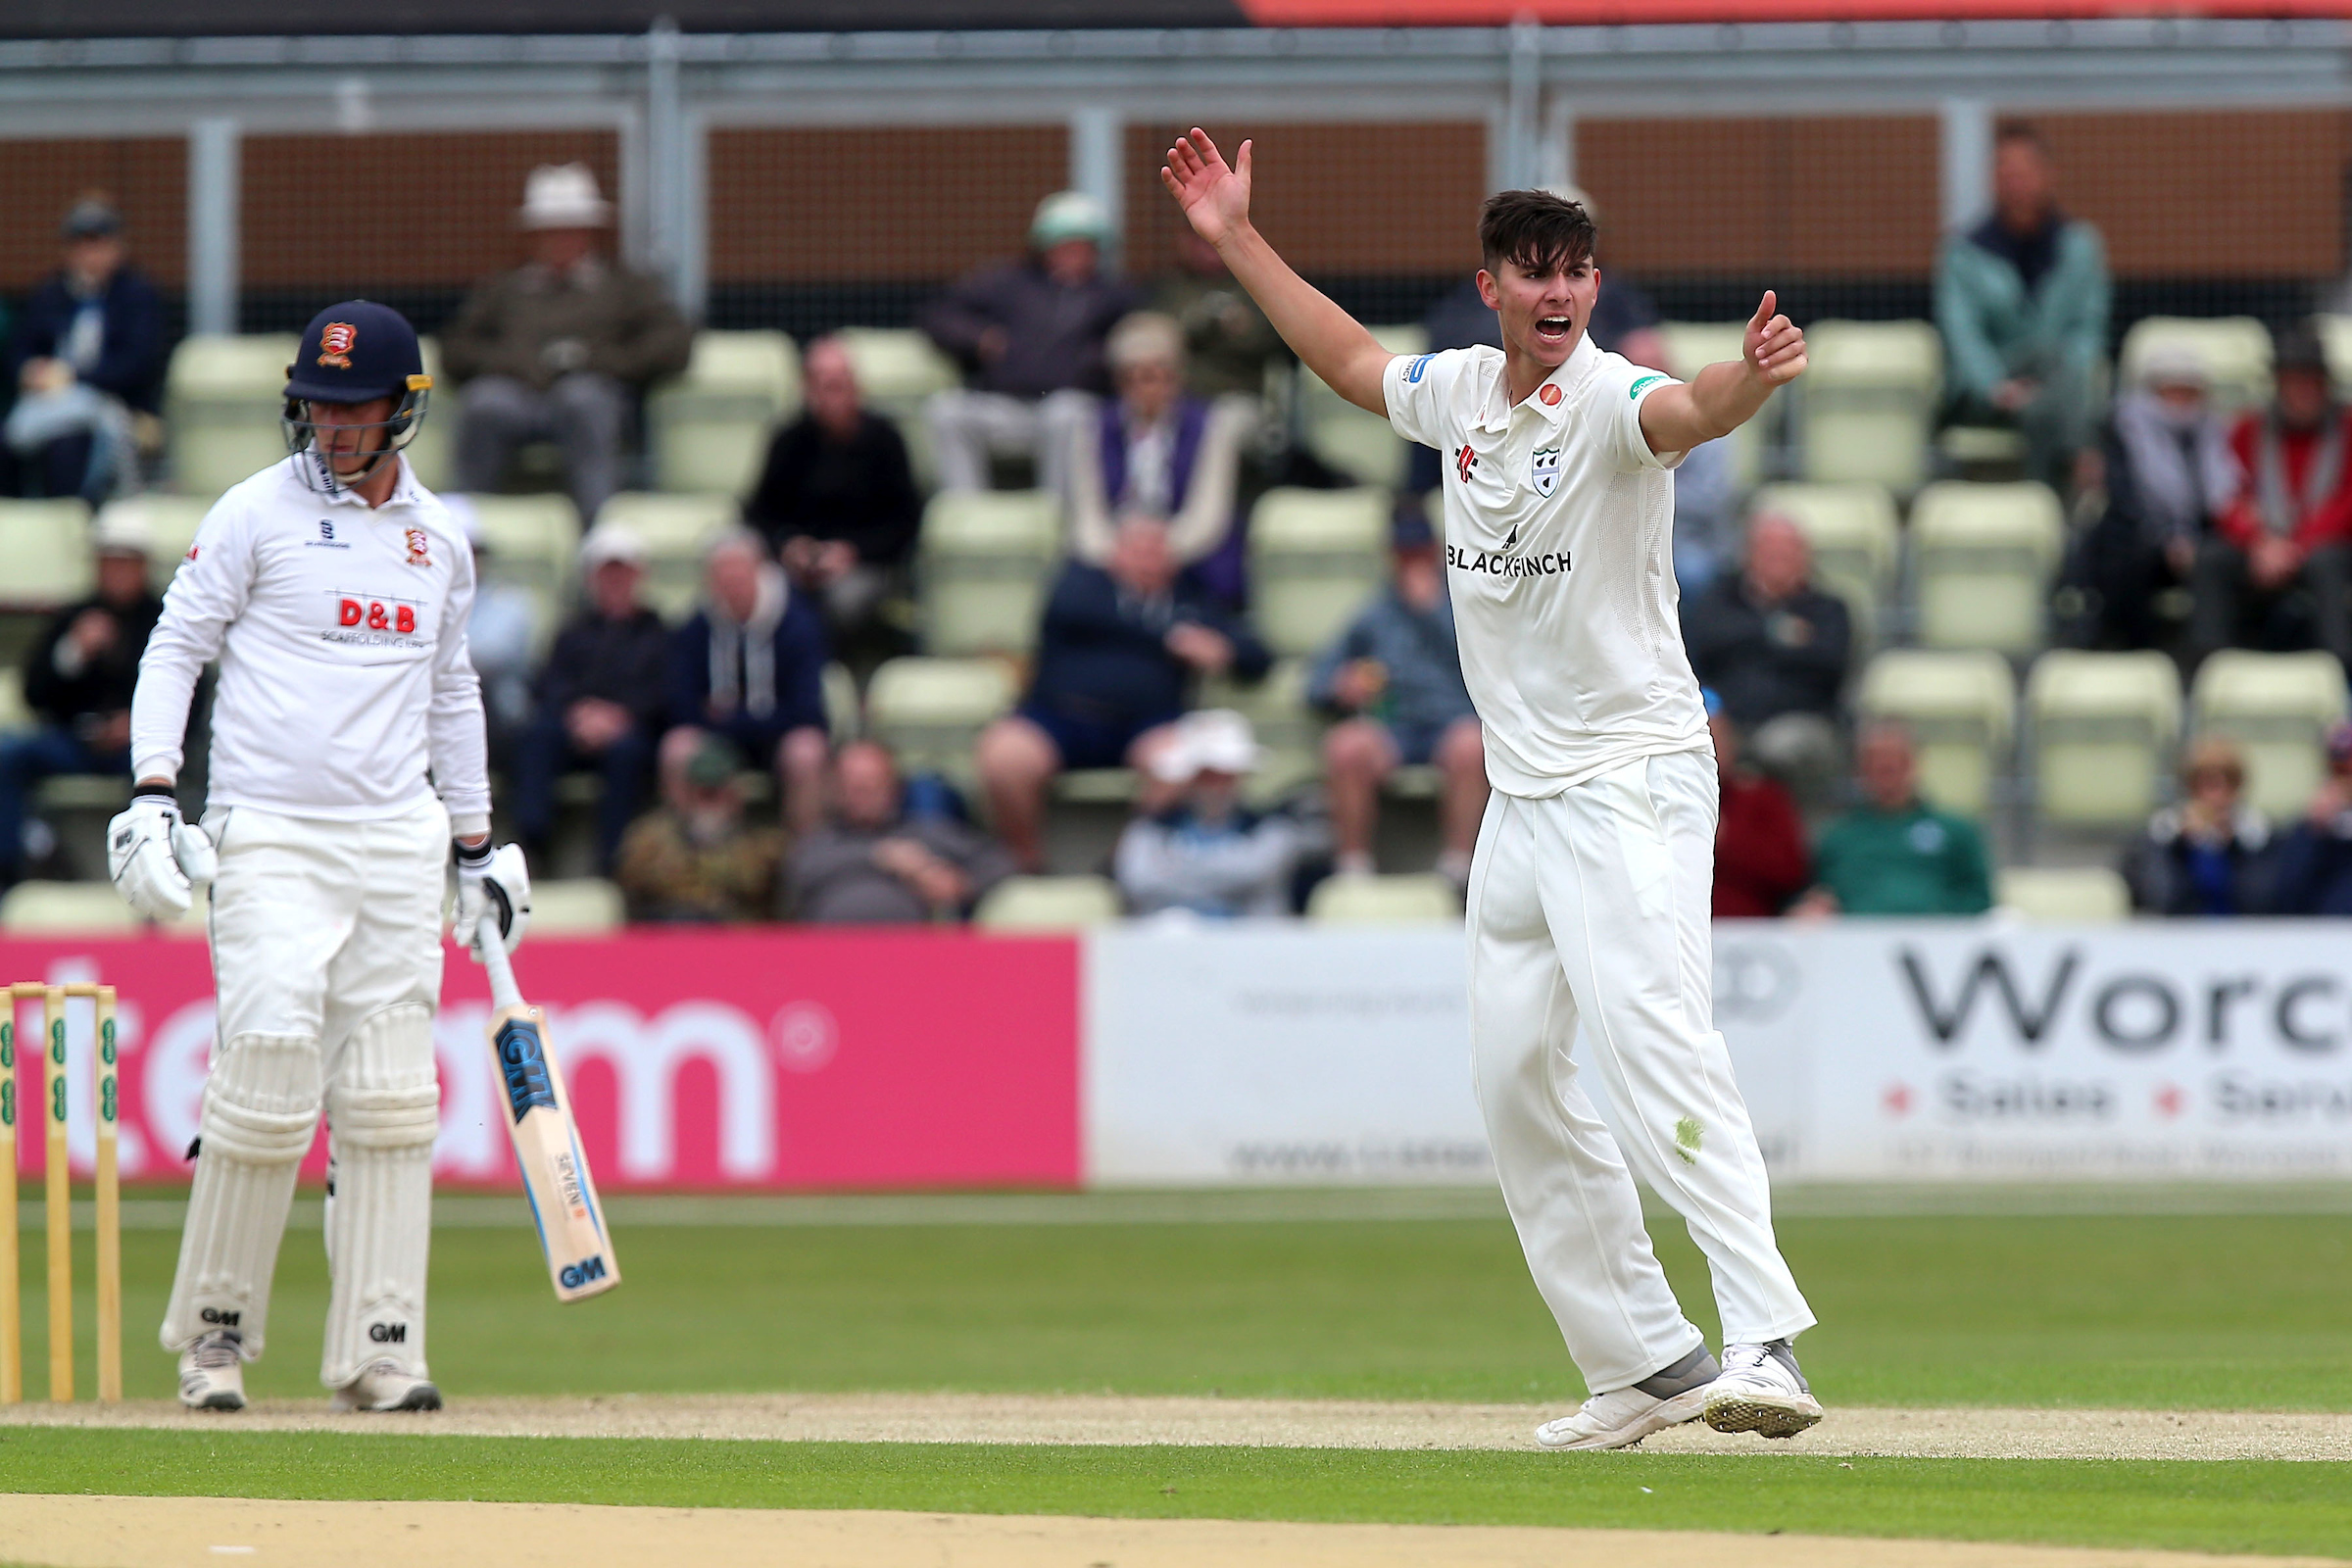 Josh Tongue of Worcestershire appeals for the wicket of Essex's Tom Westley during the opening day of the Specsavers County Championship division one clash at Blackfinch New Road. Picture: Gavin Ellis/TGS PHOTOS